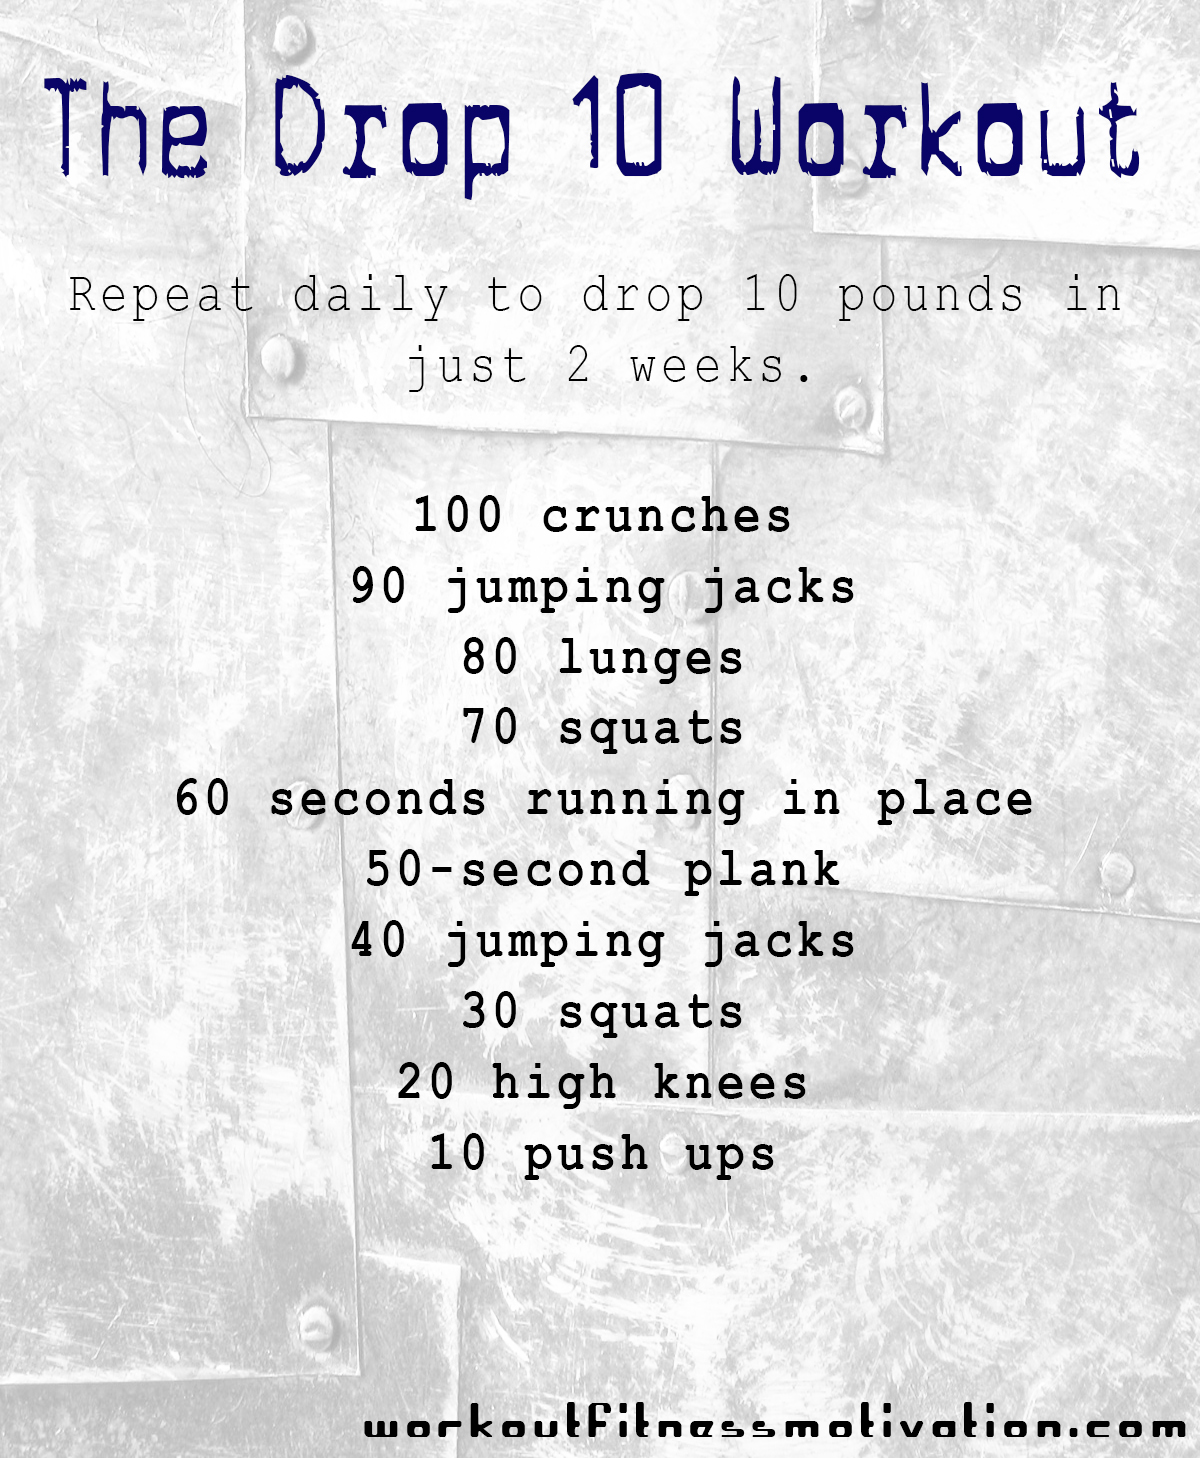 Workout Plan To Drop Weight Fast Krtsy